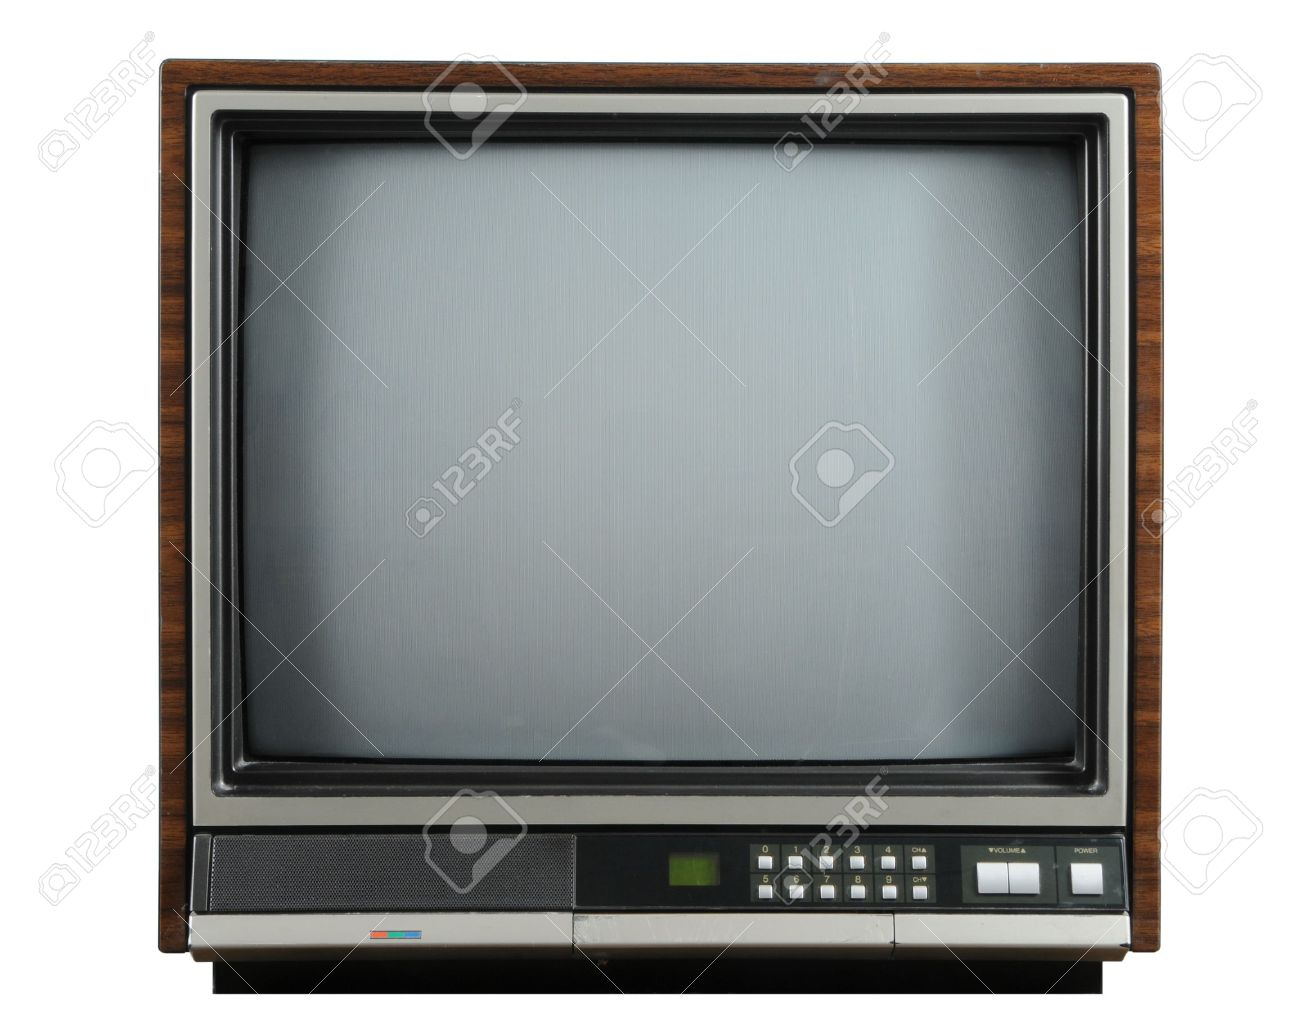 Vintage television isolated on a white background Stock Photo - 7774232